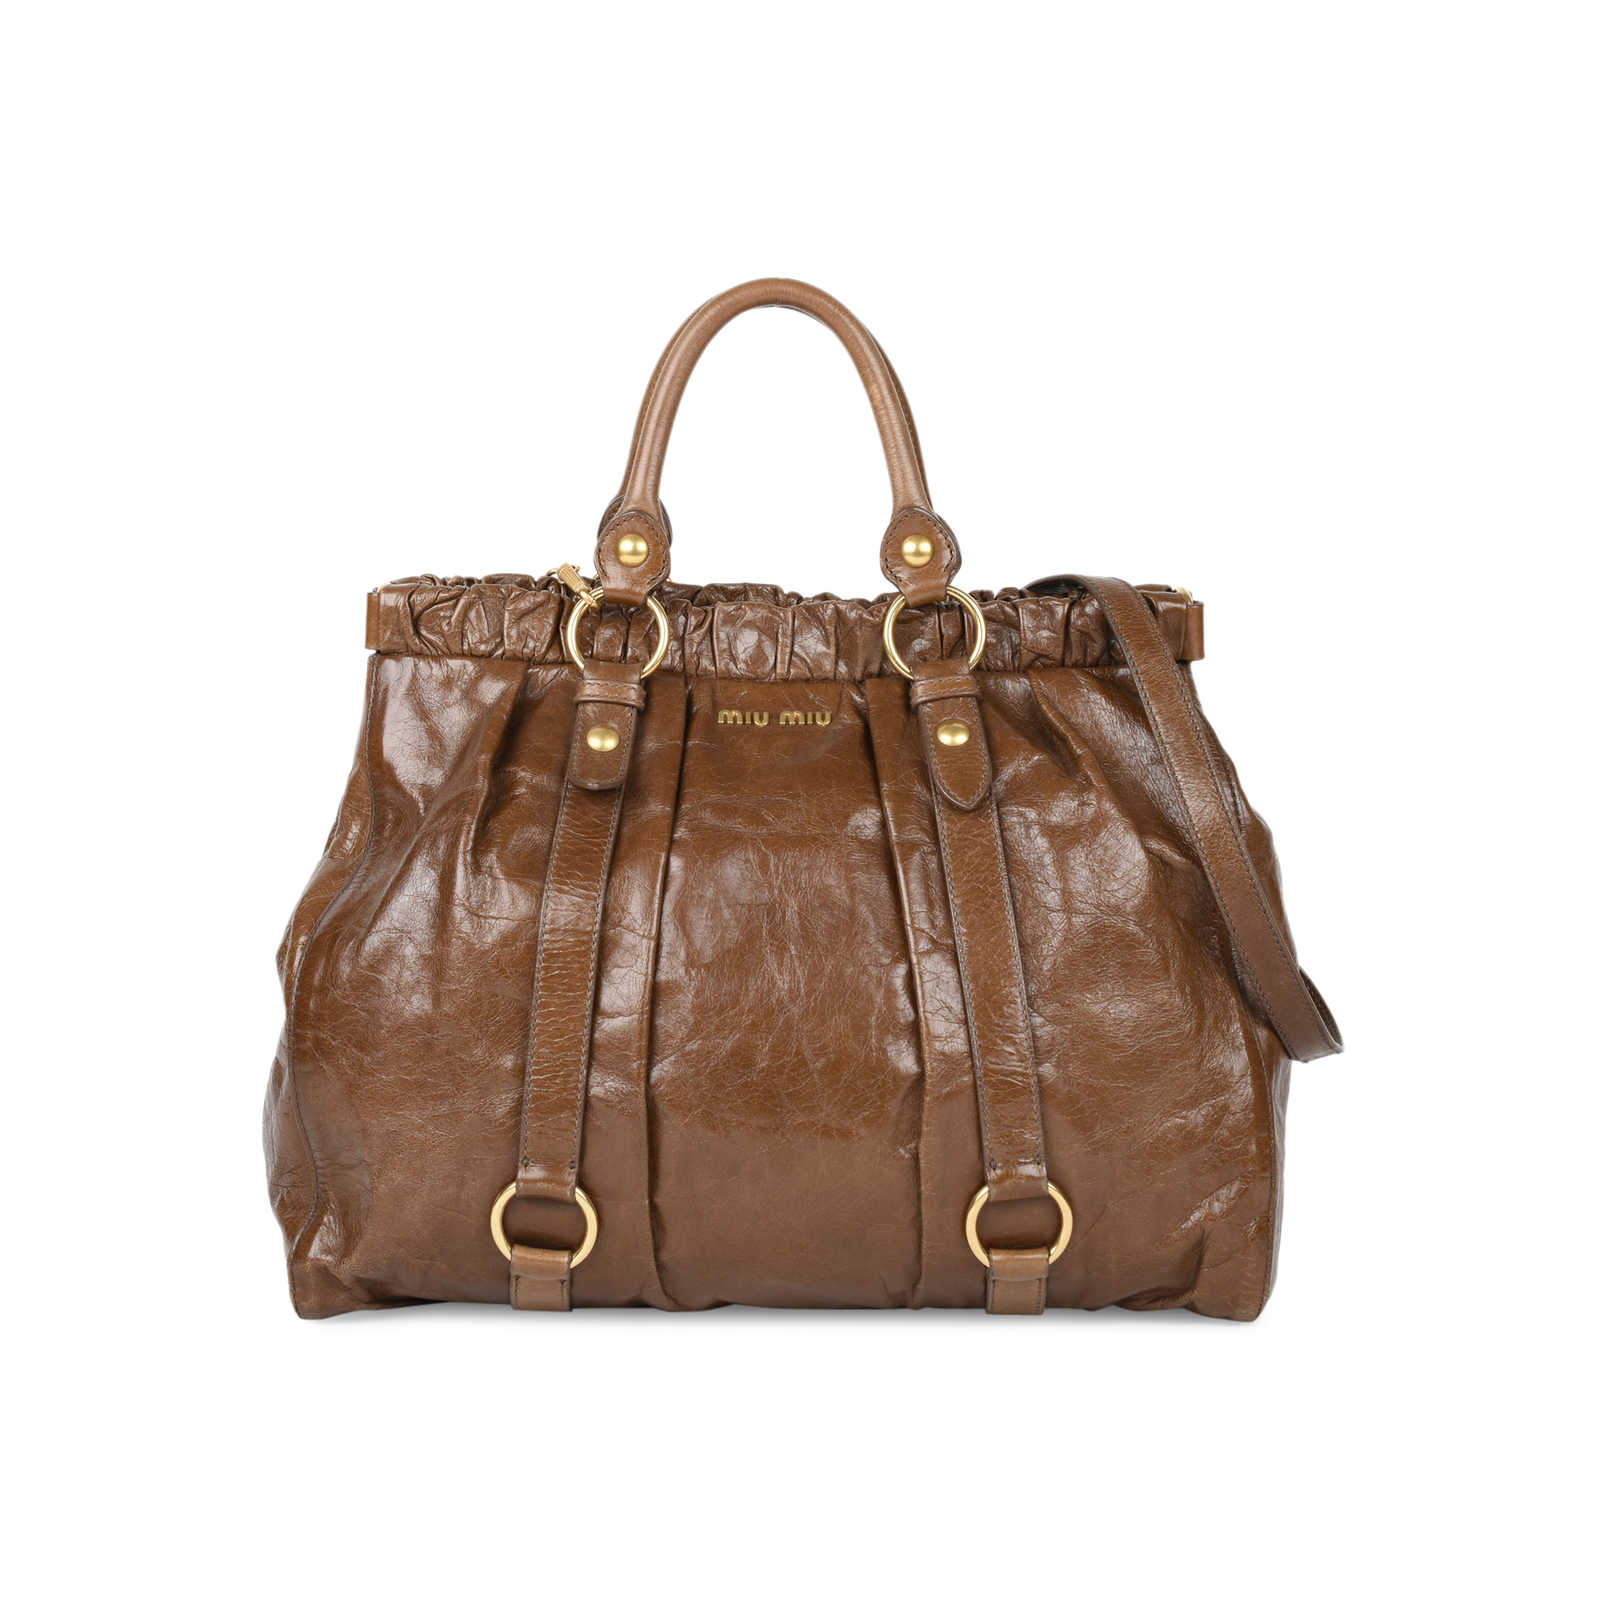 92daaef5926f Authentic Pre Owned Miu Miu Vitello Lux Satchel (PSS-513-00015) ...